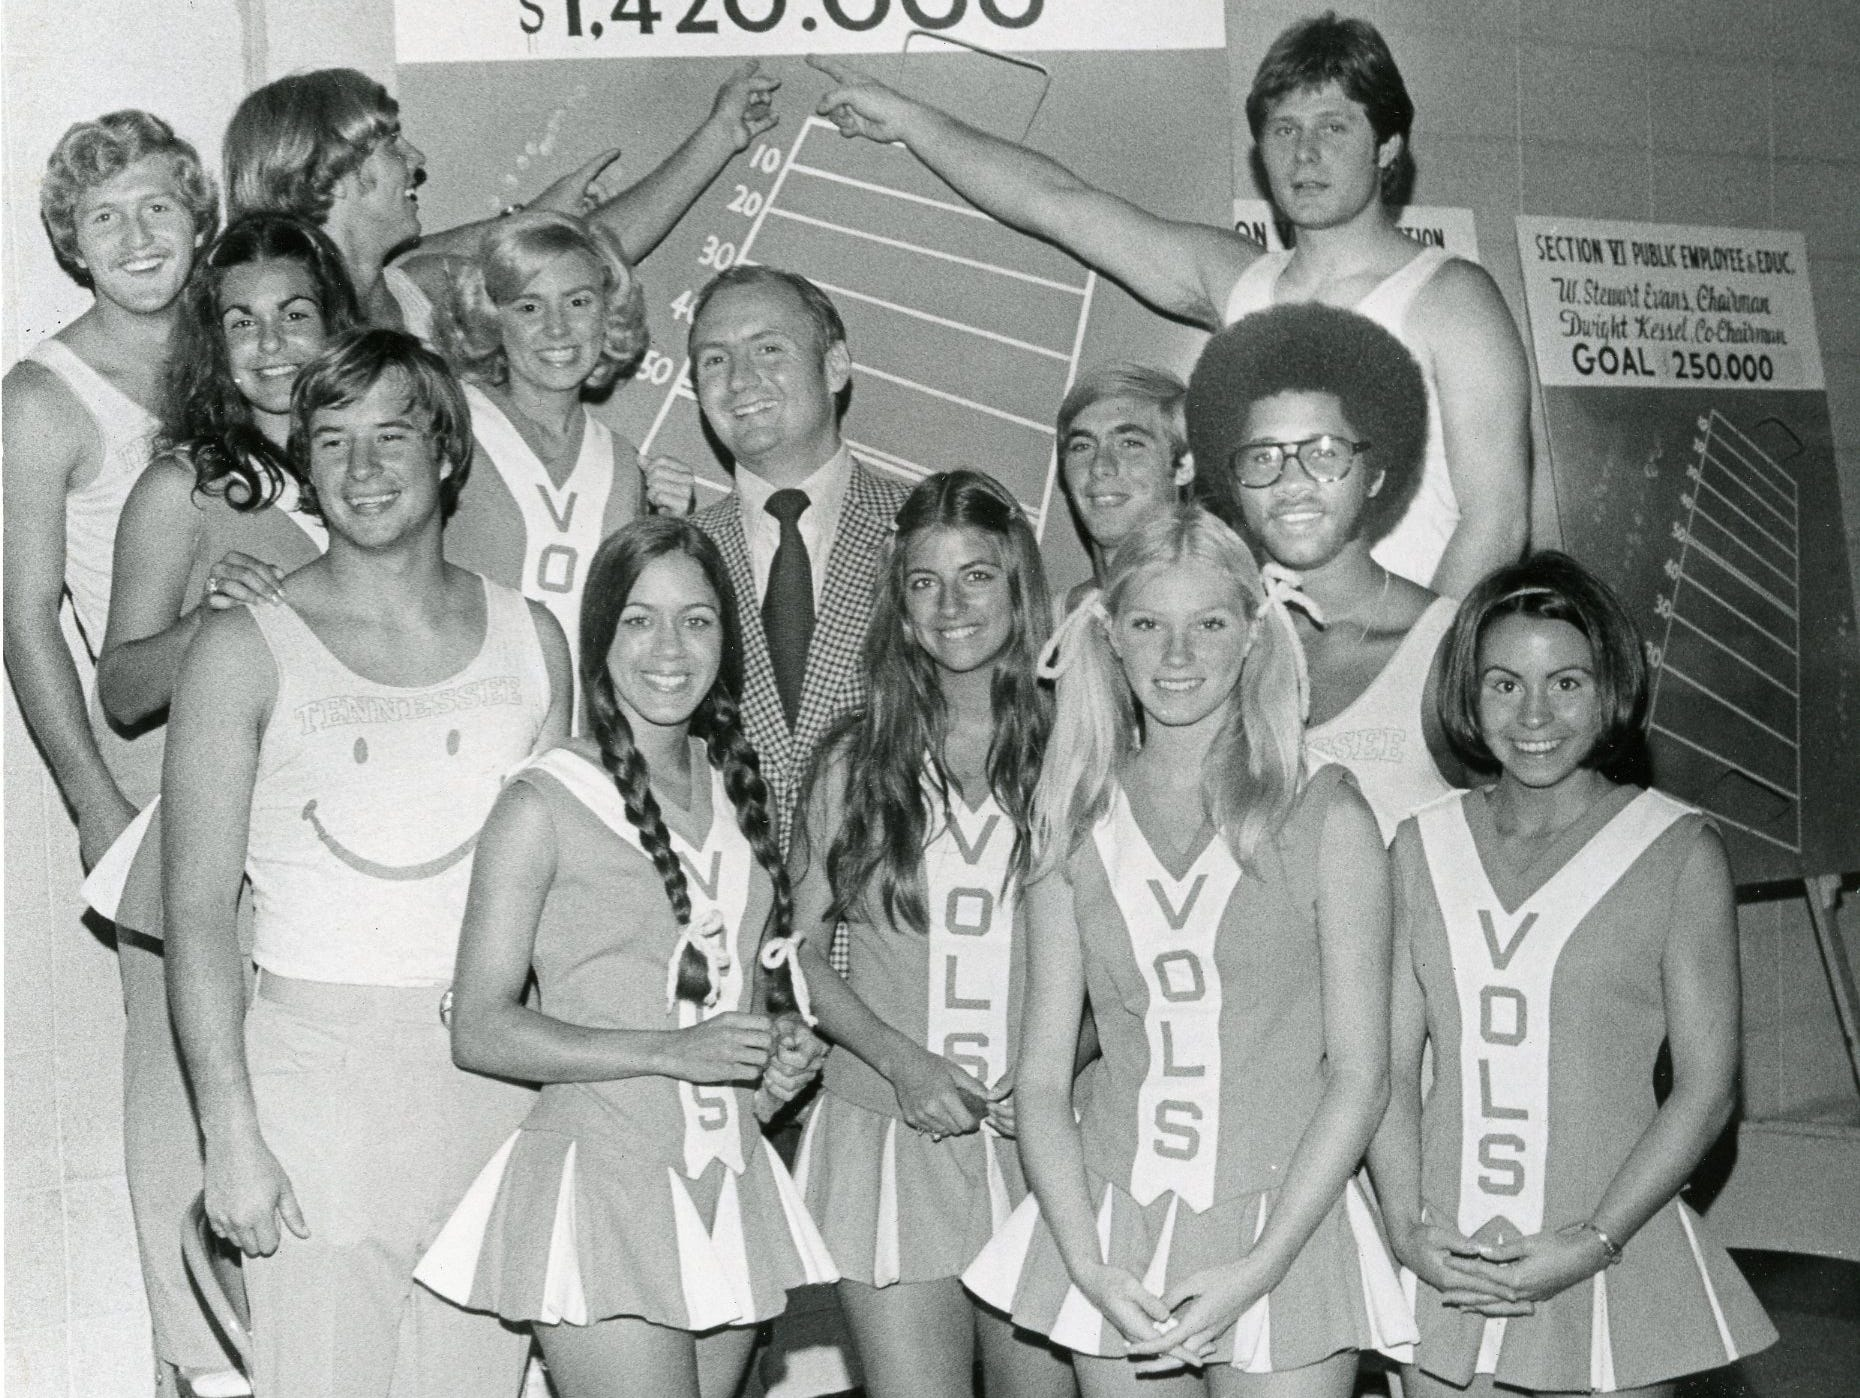 Members of the University of Tennessee cheer squad with James A. Haslam II, center. September, 1971.